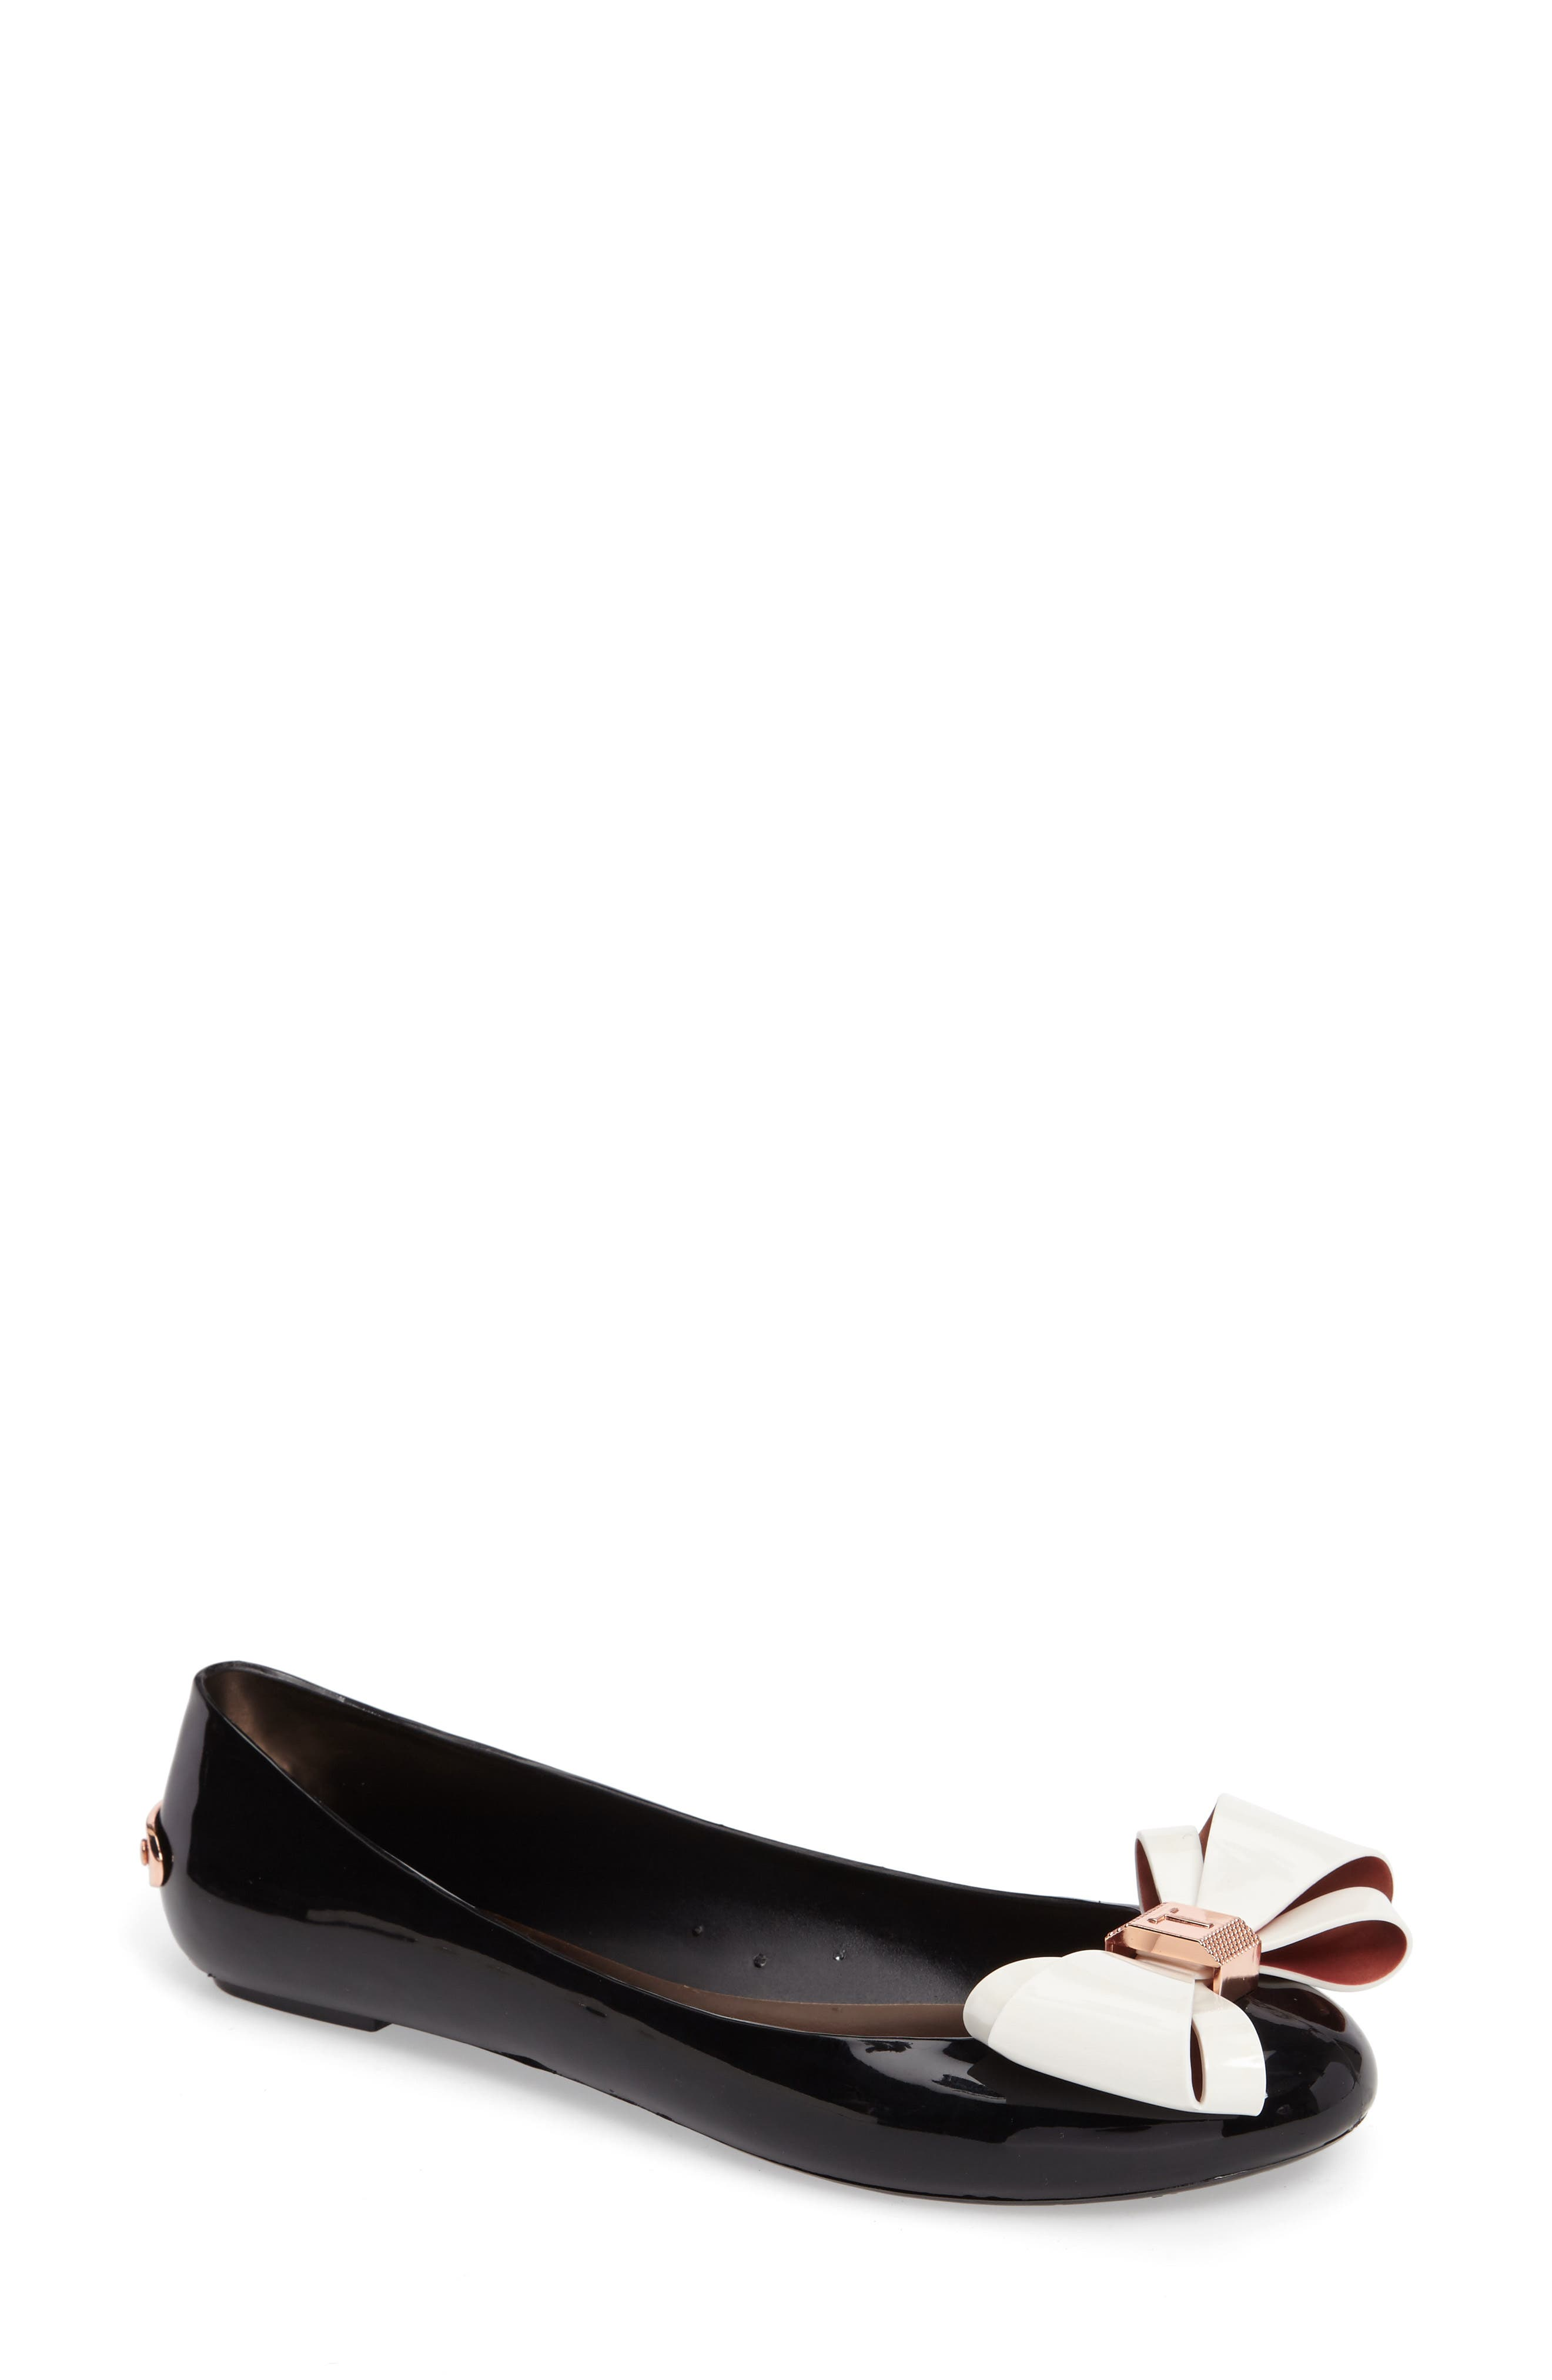 TED BAKER LONDON Julivia Bow Flat, Main, color, 002